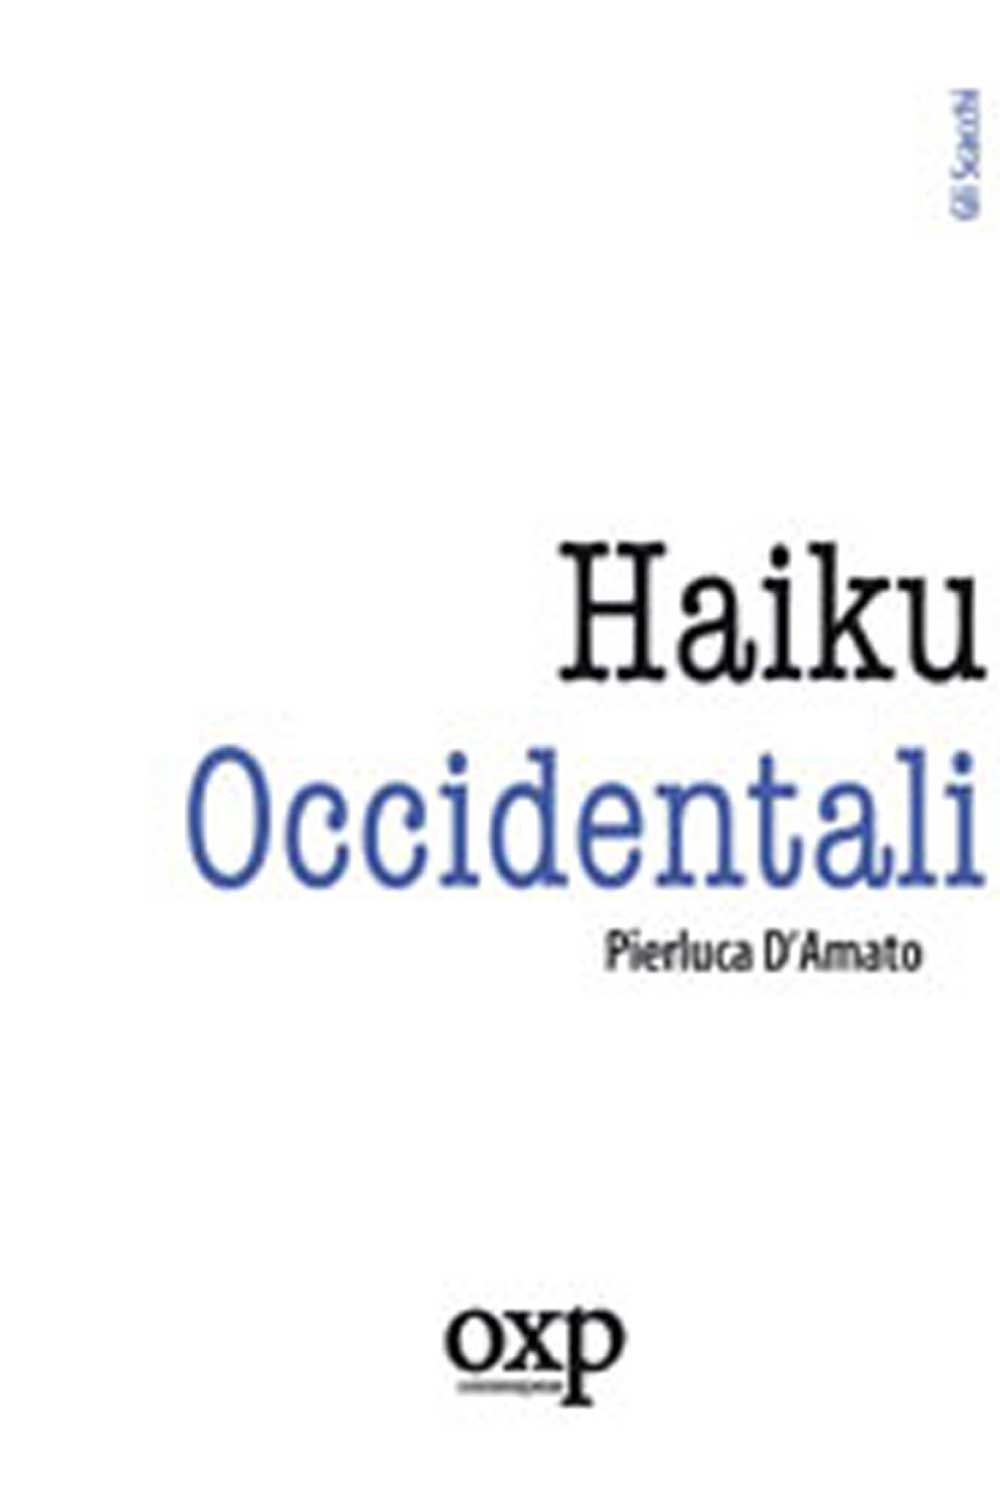 Haiku occidentali, di Pierluca D'Amato (Gli Scacchi, 2011)